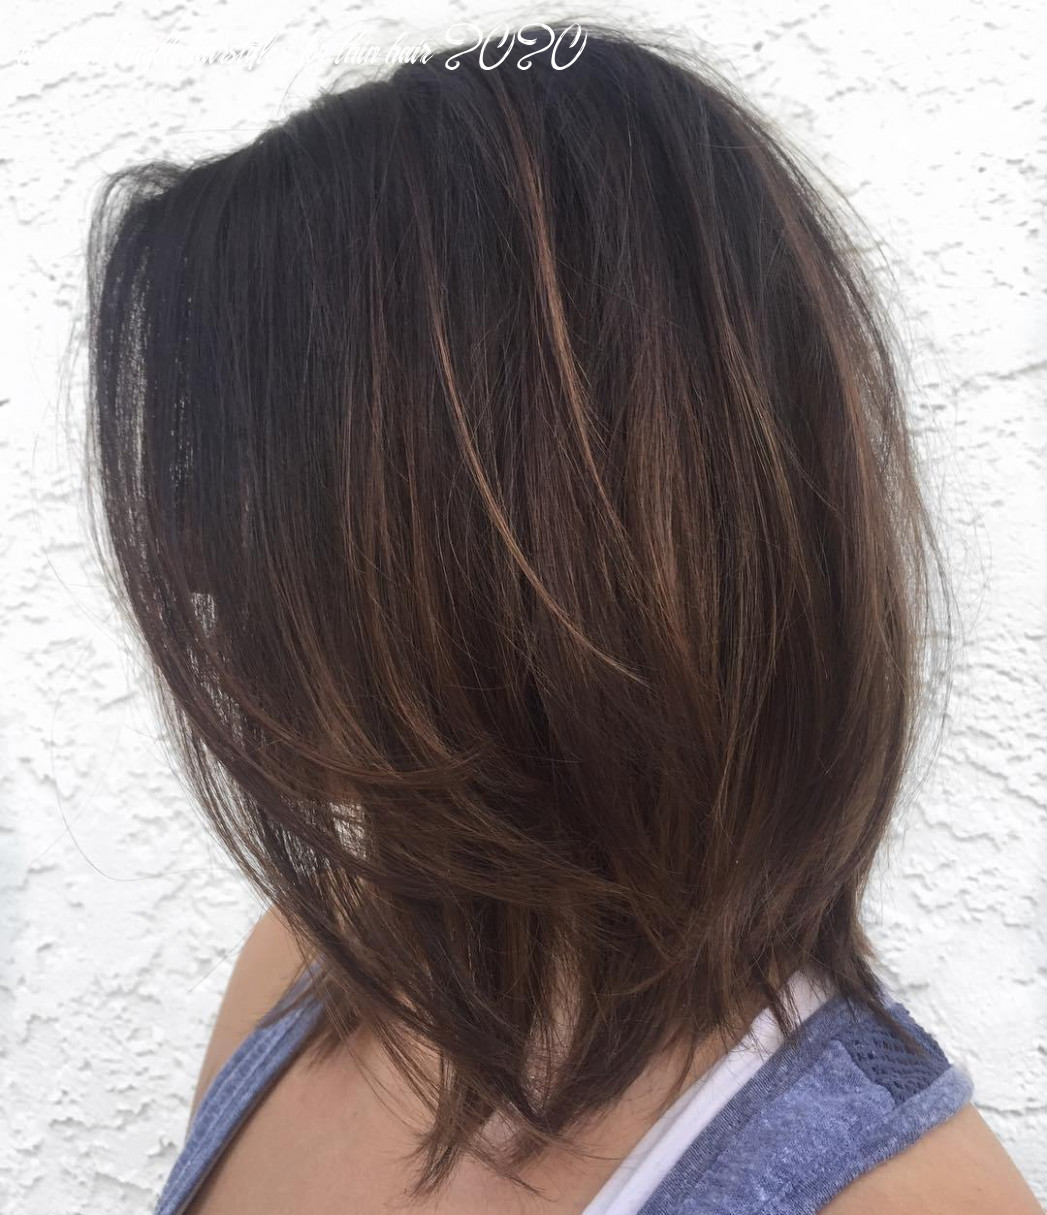 12 Perfect Medium Length Hairstyles for Thin Hair in 12